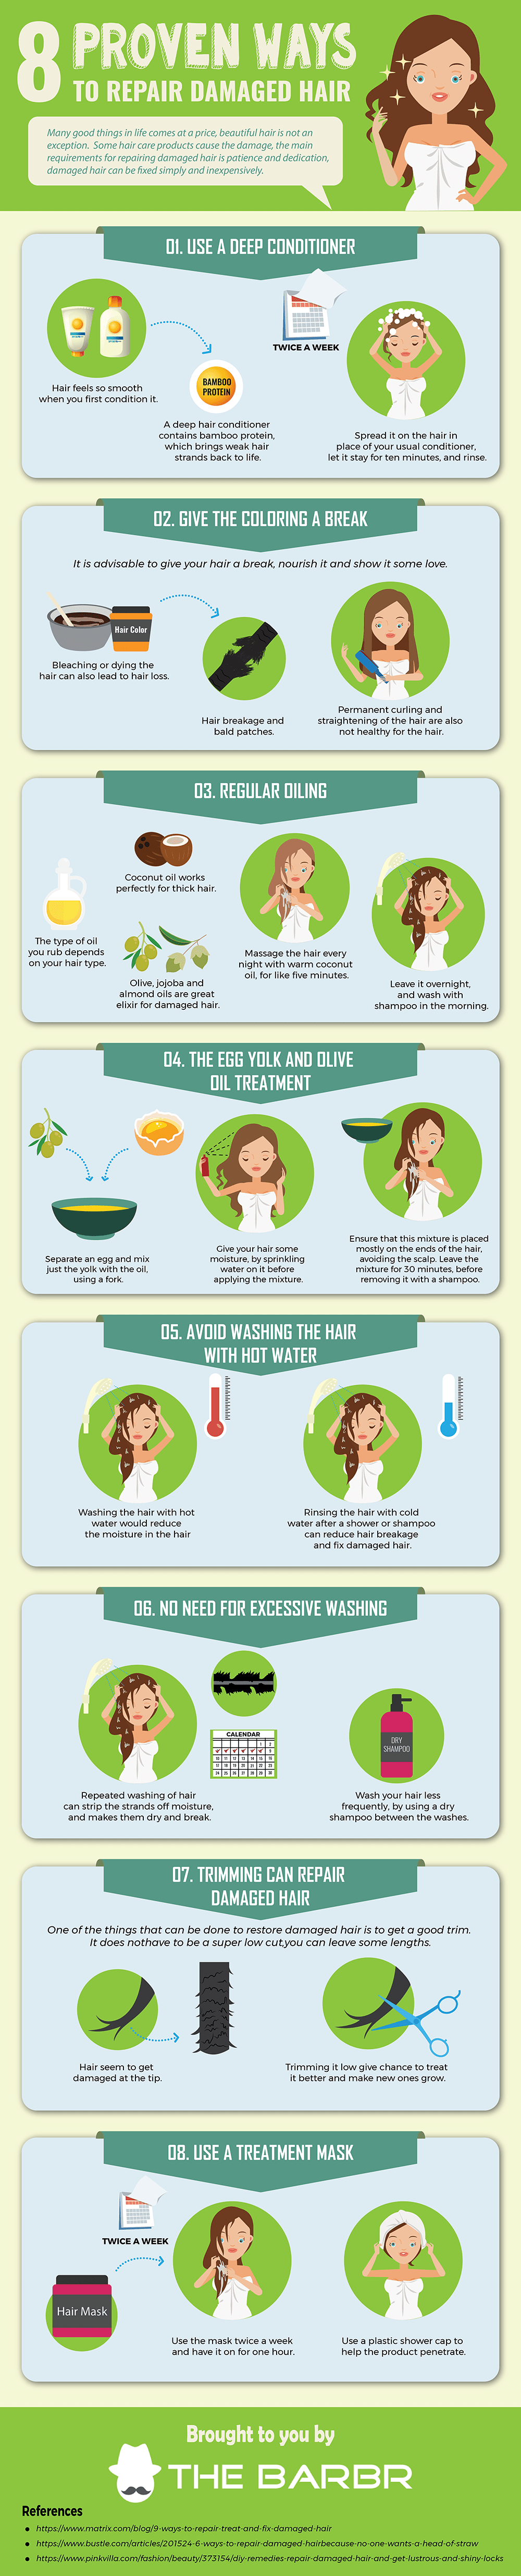 The Gorgeous Mane Manual: 8 Great Ways to Repair Damaged Hair - Infographic